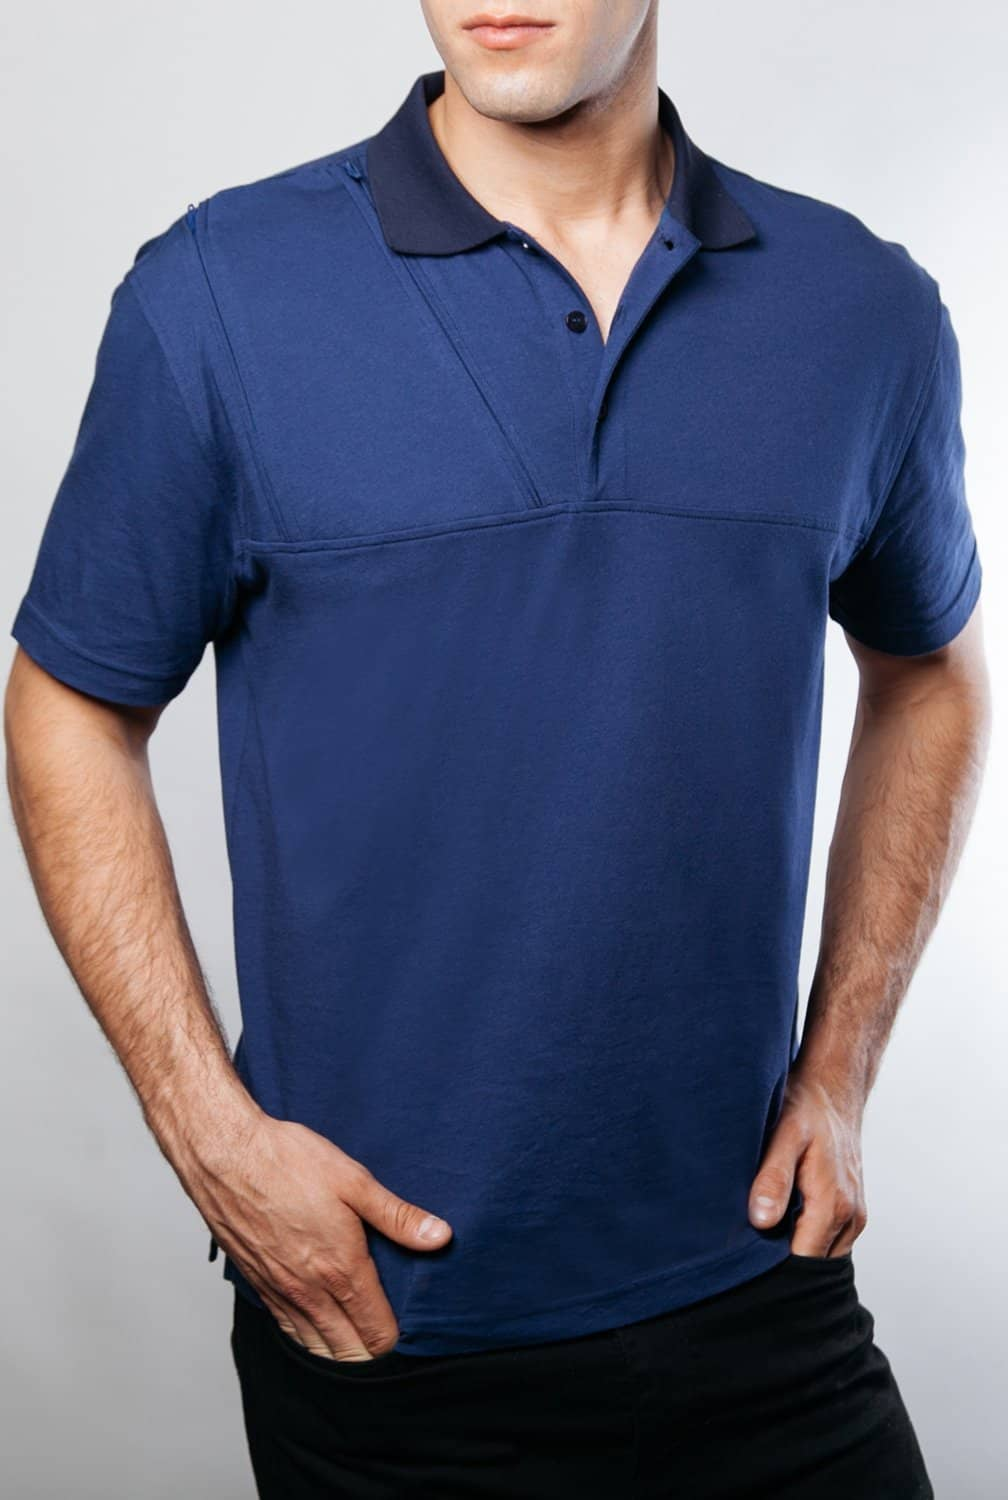 Men's Chest Access Polo Shirt - Care+Wear